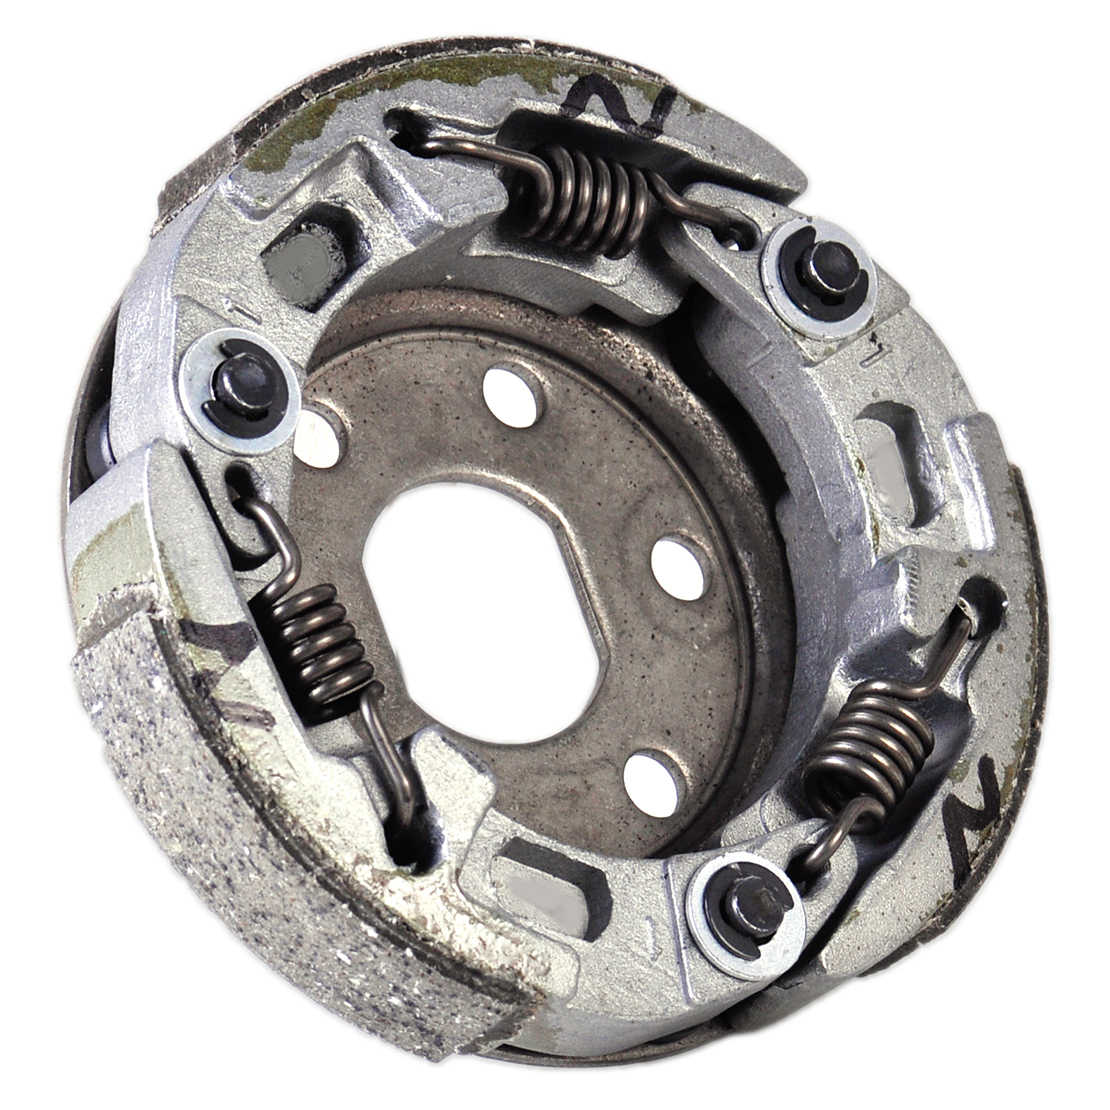 CITALL Performance Racing Clutch Replacement Fit for GY6 50cc 139QMB  Scooter Honda Yamaha Suzuki Loncin ATV Quad Moped kazuma